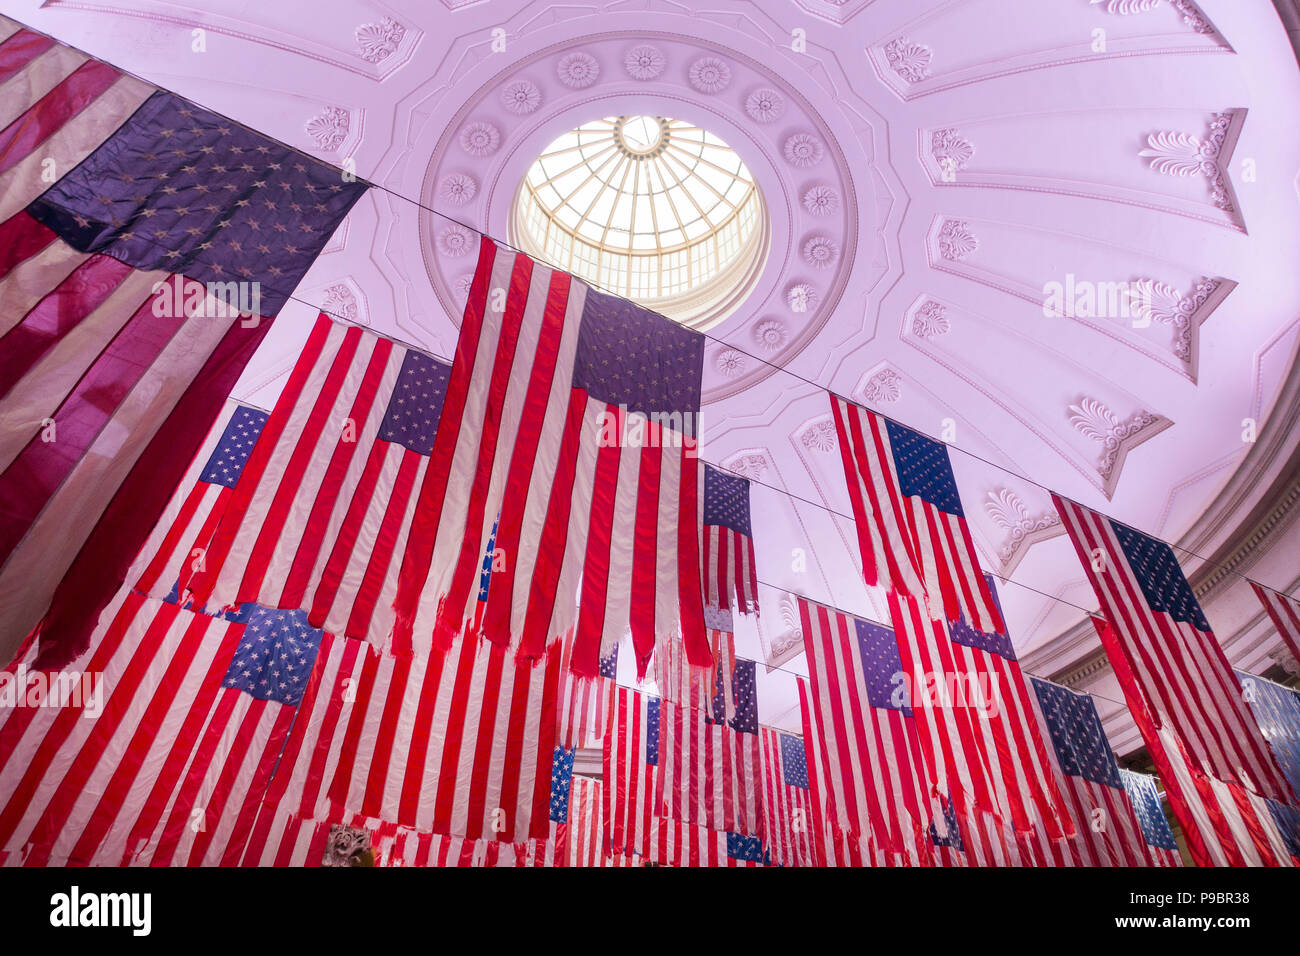 Federal Hall building in lower Manhattan New York City - Stock Image